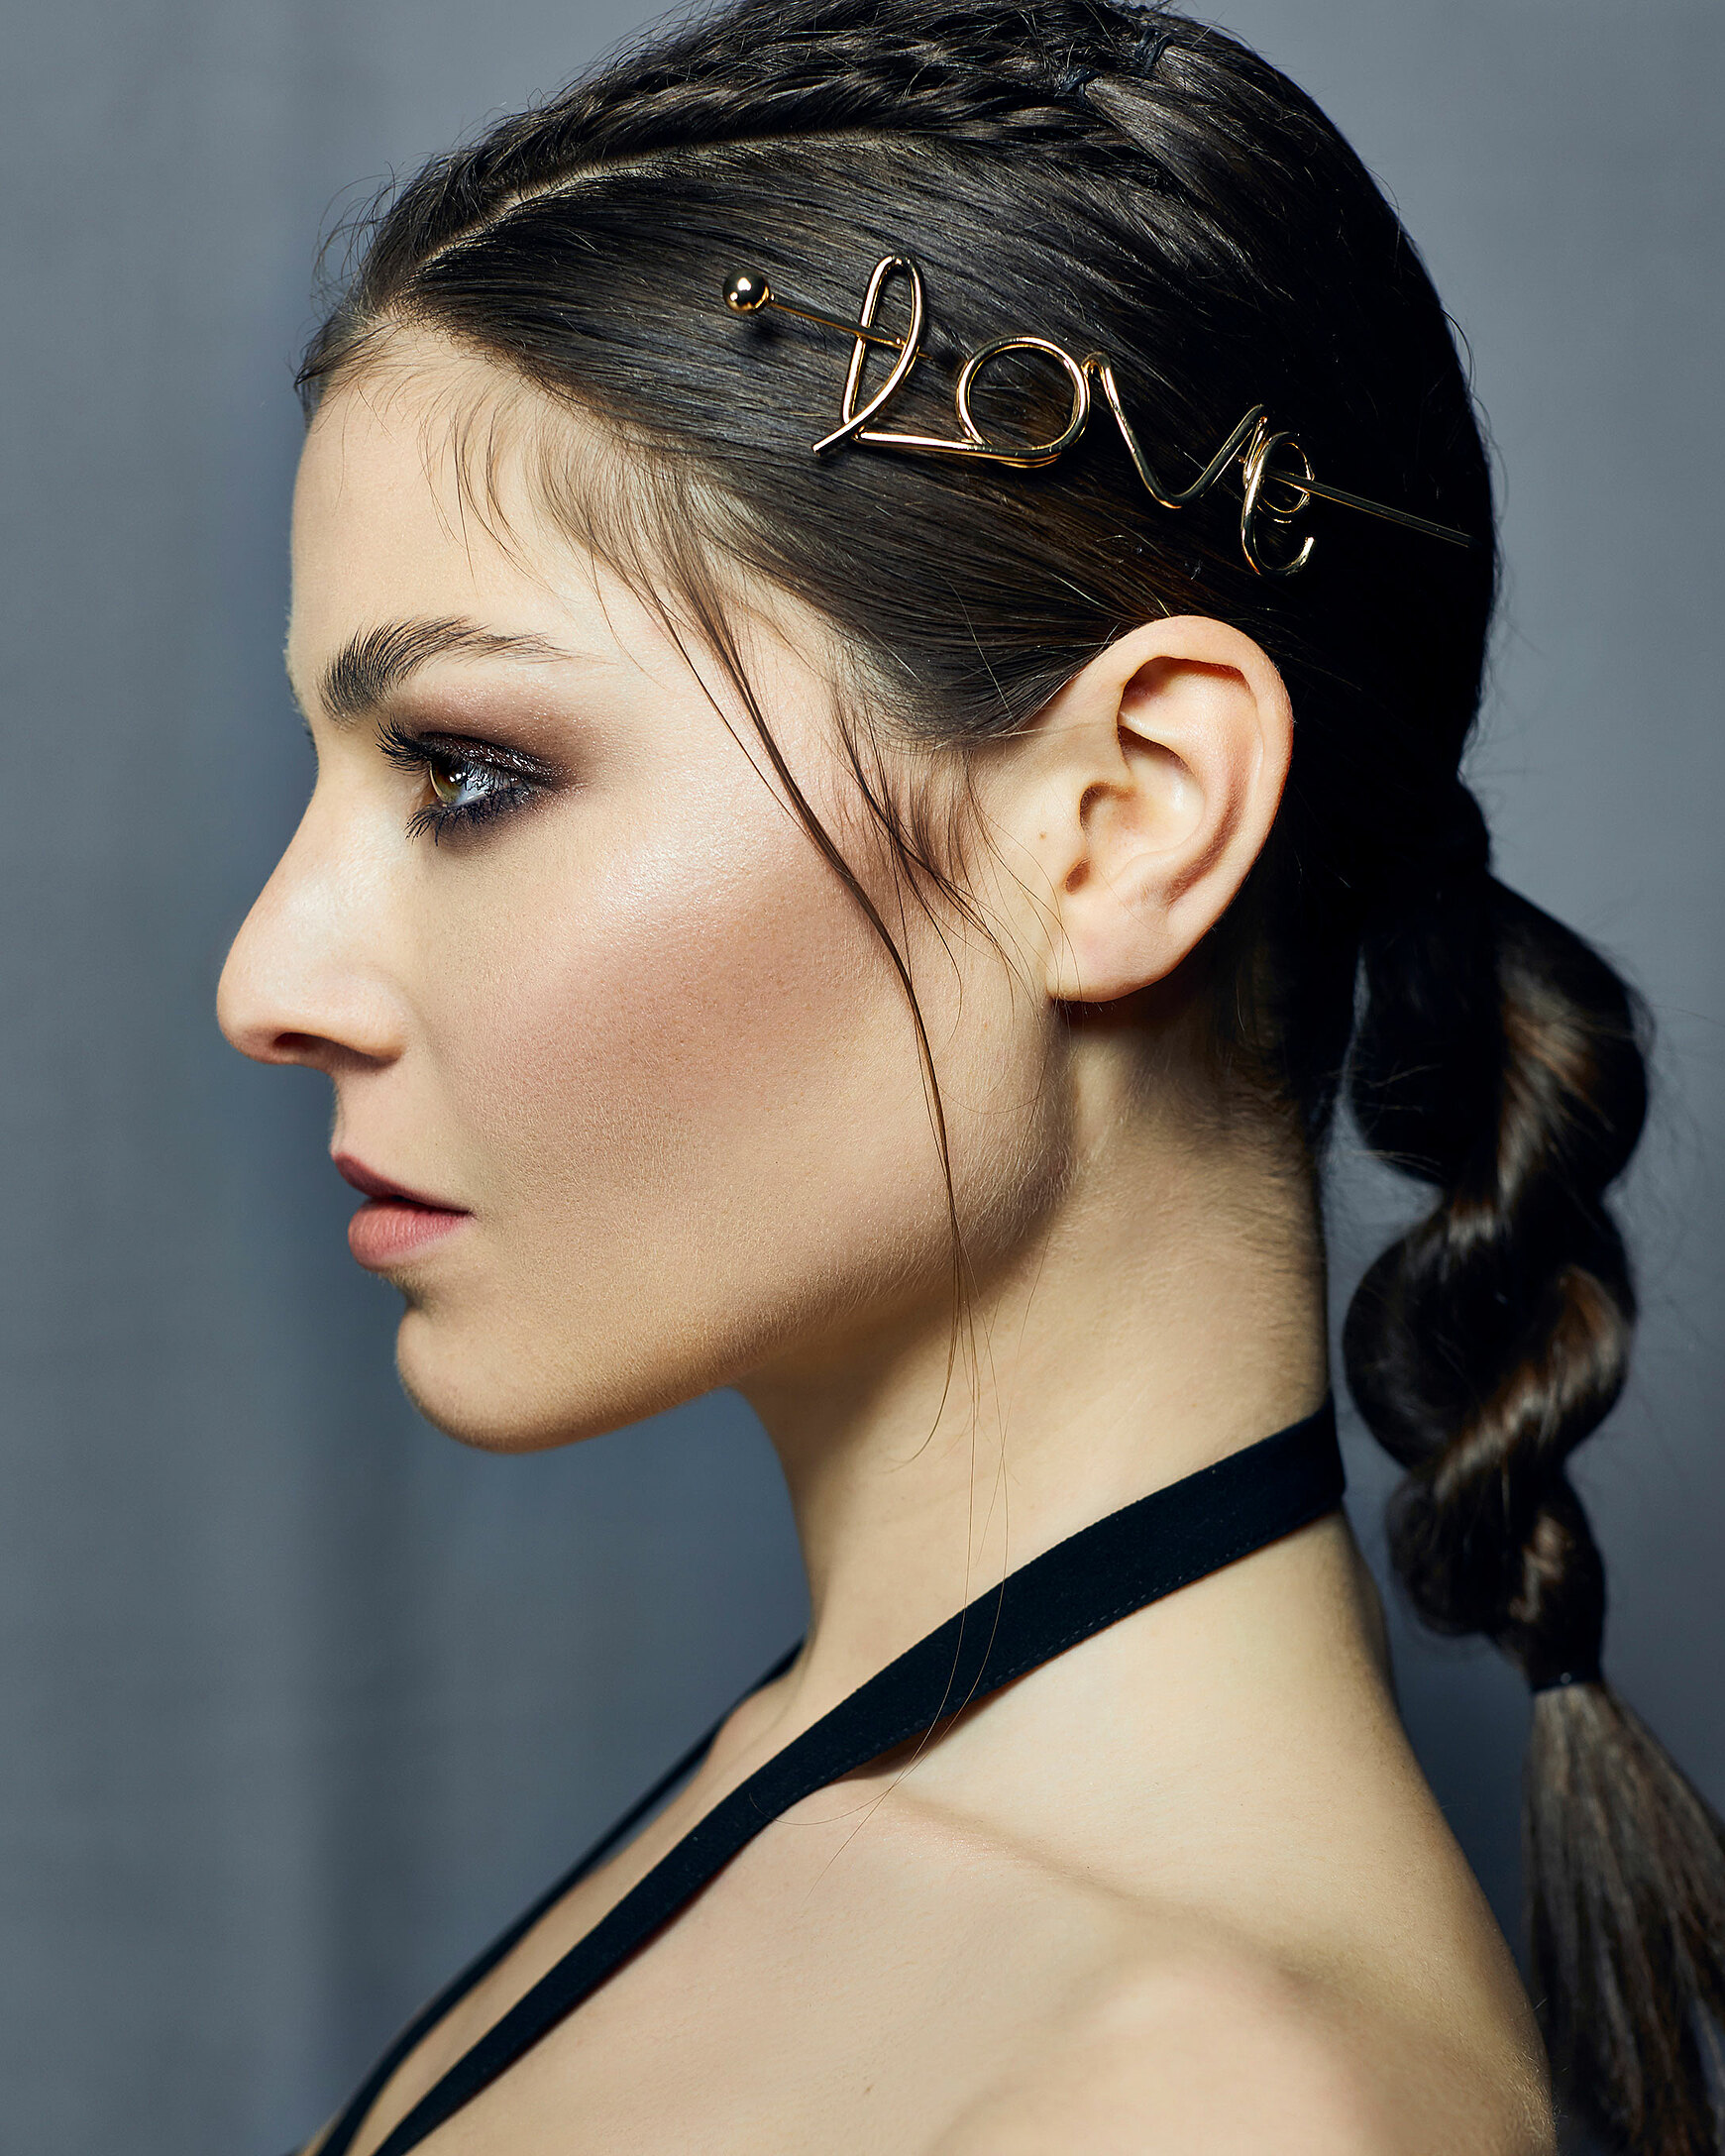 A close-up of a female model with brown hair darf eyeshadow and a creative bun with barrette which spell love.